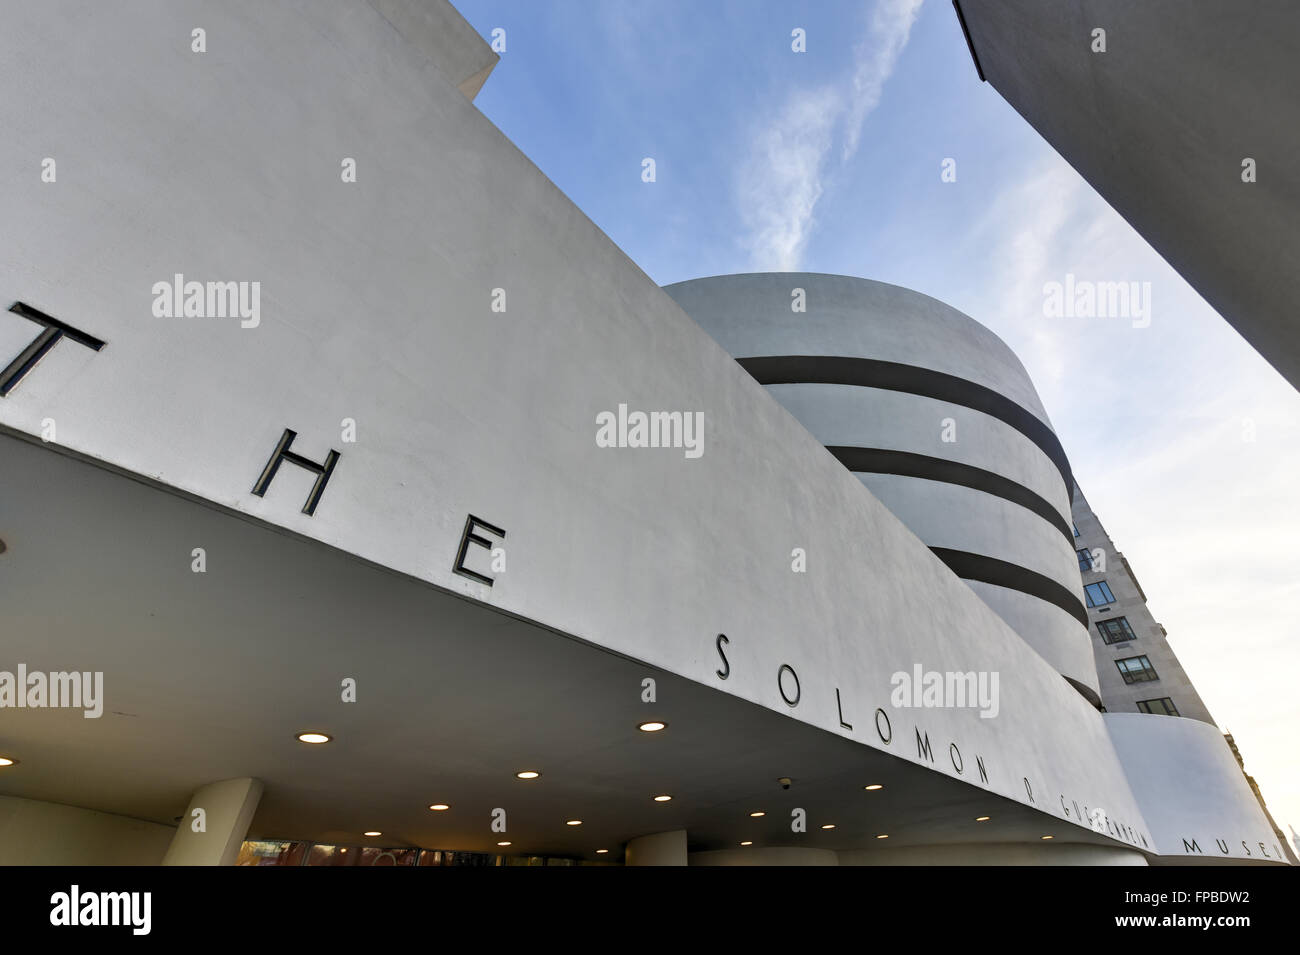 New York City - January 31, 2016: The famous Solomon R. Guggenheim Museum of modern and contemporary art in New York City, USA Stock Photo